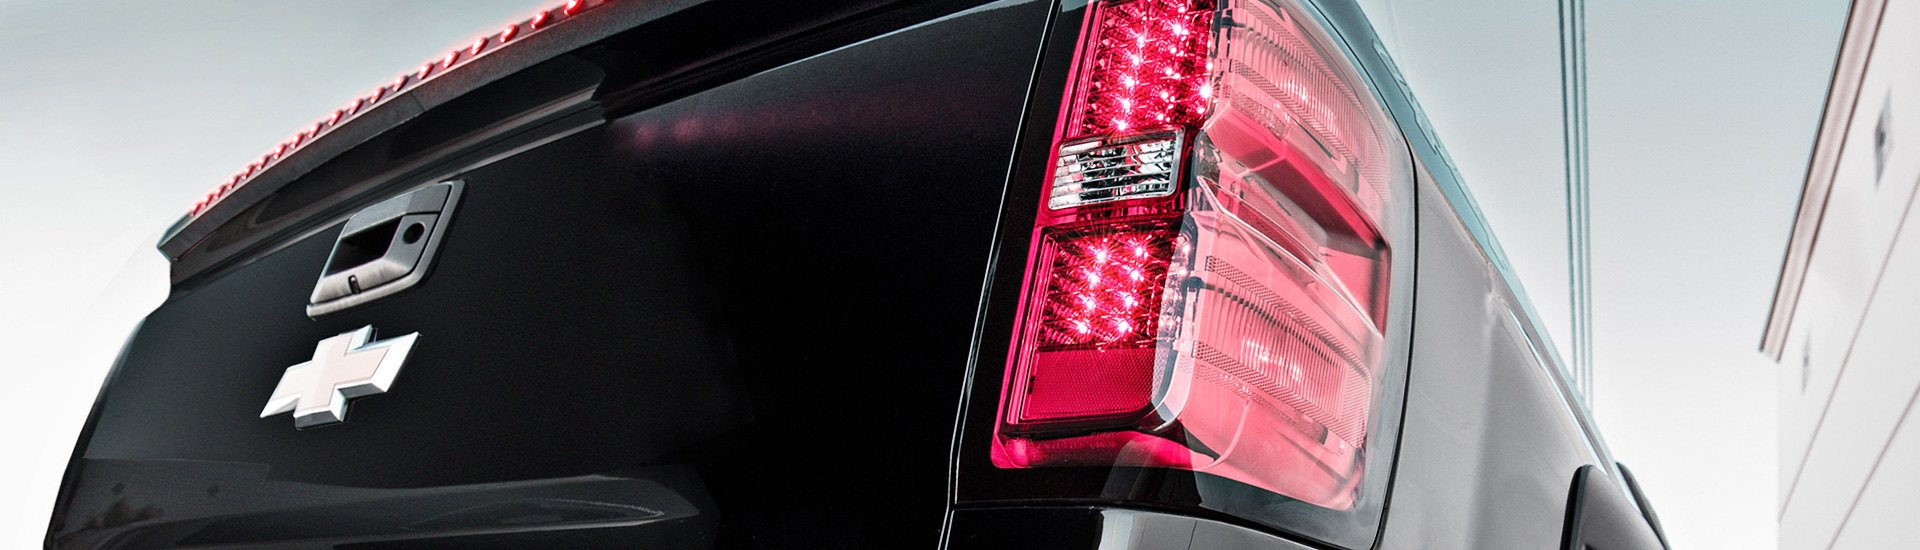 What Choices do I Have for Tail Lights?